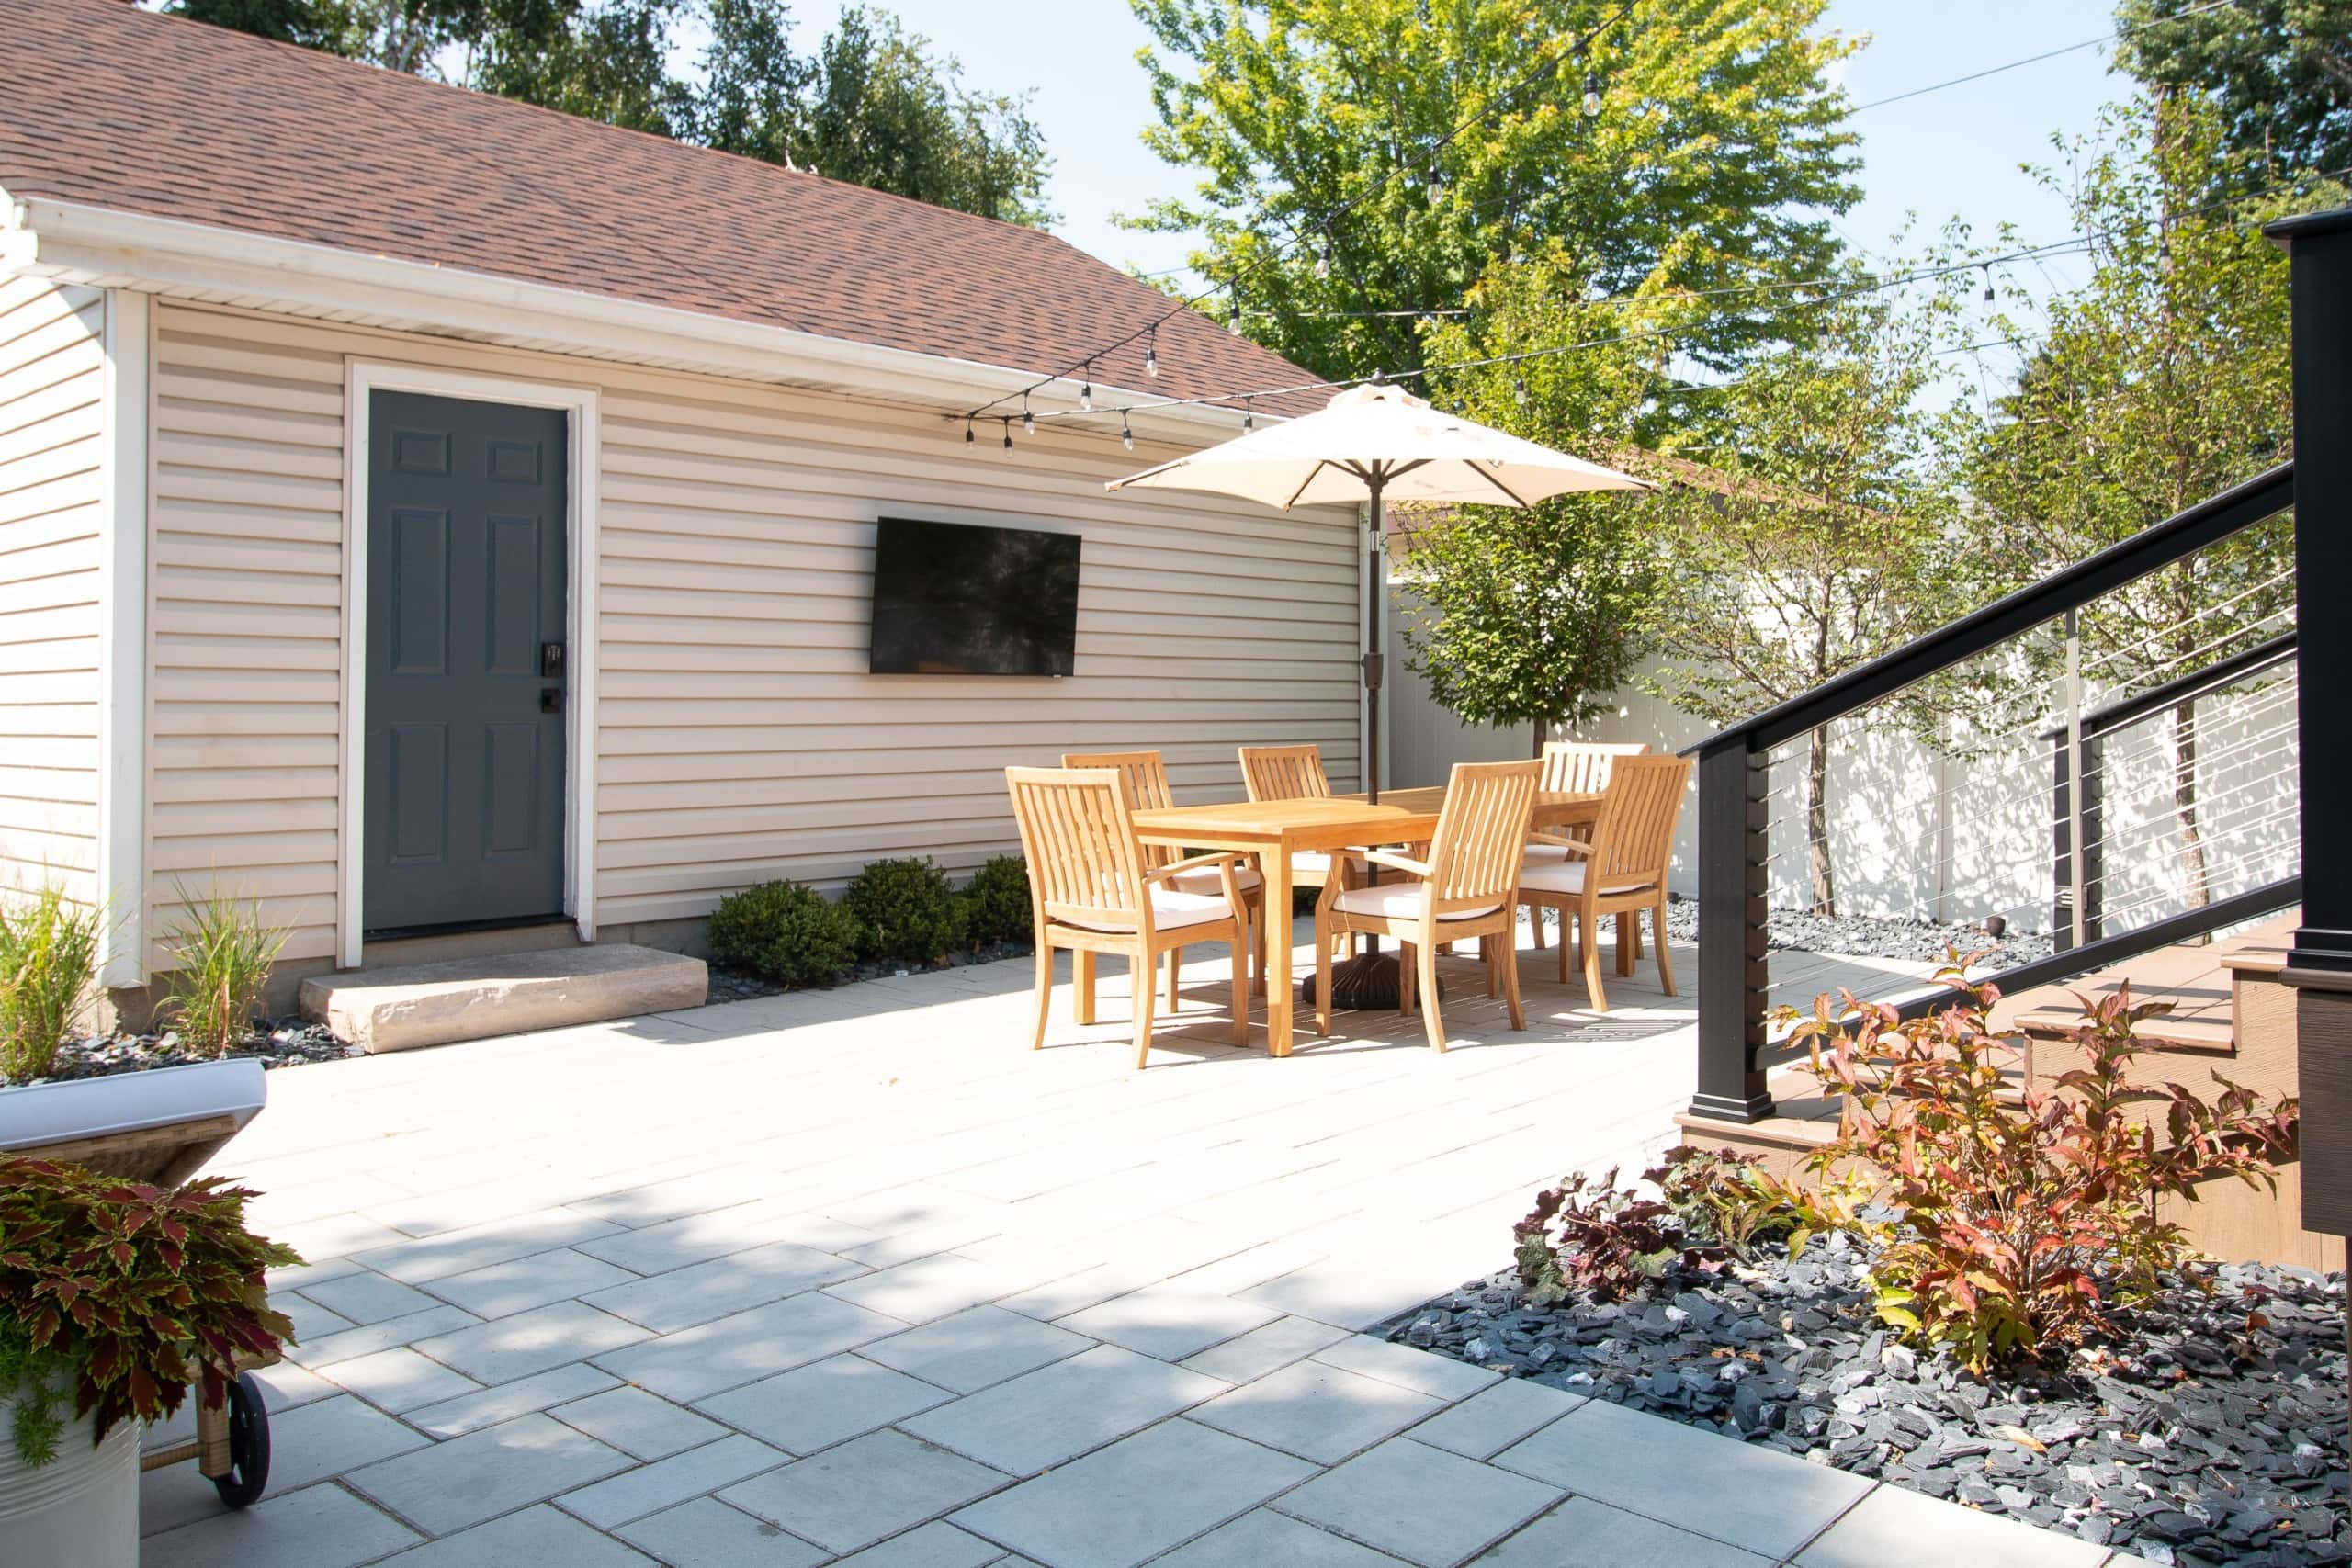 Adding stone to our back patio